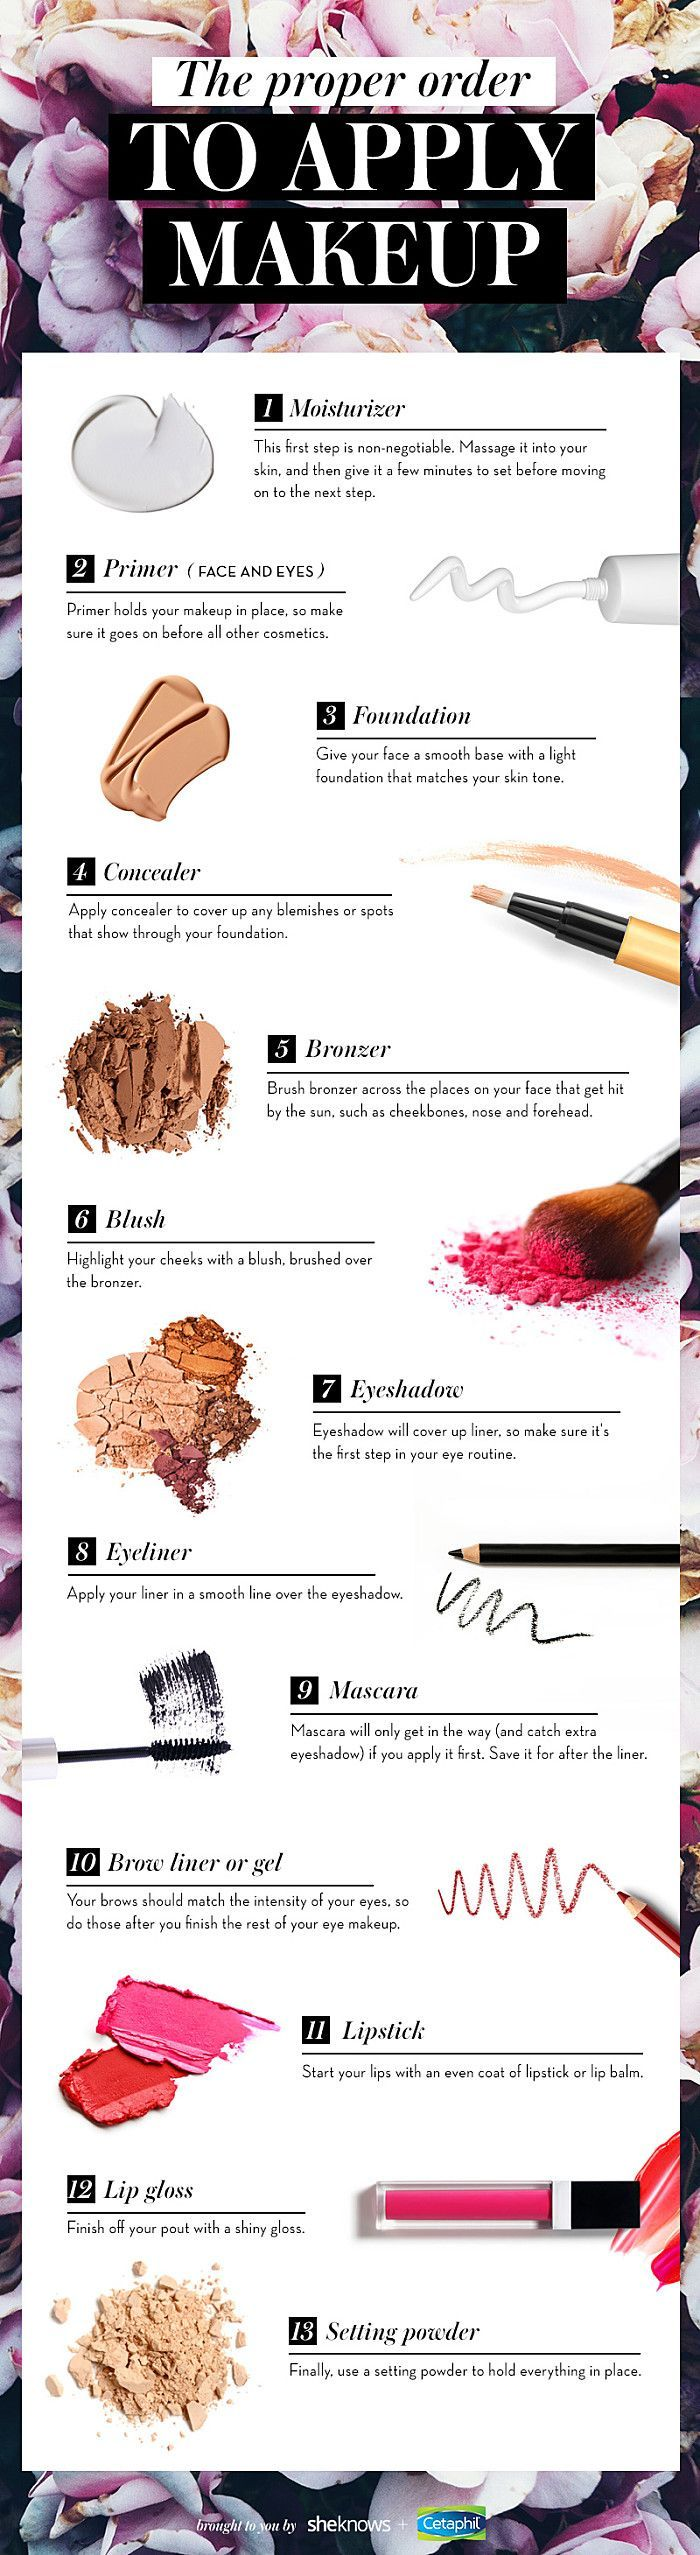 There#39;s a correct order for applying makeup and I#39;m going to tell you what it is